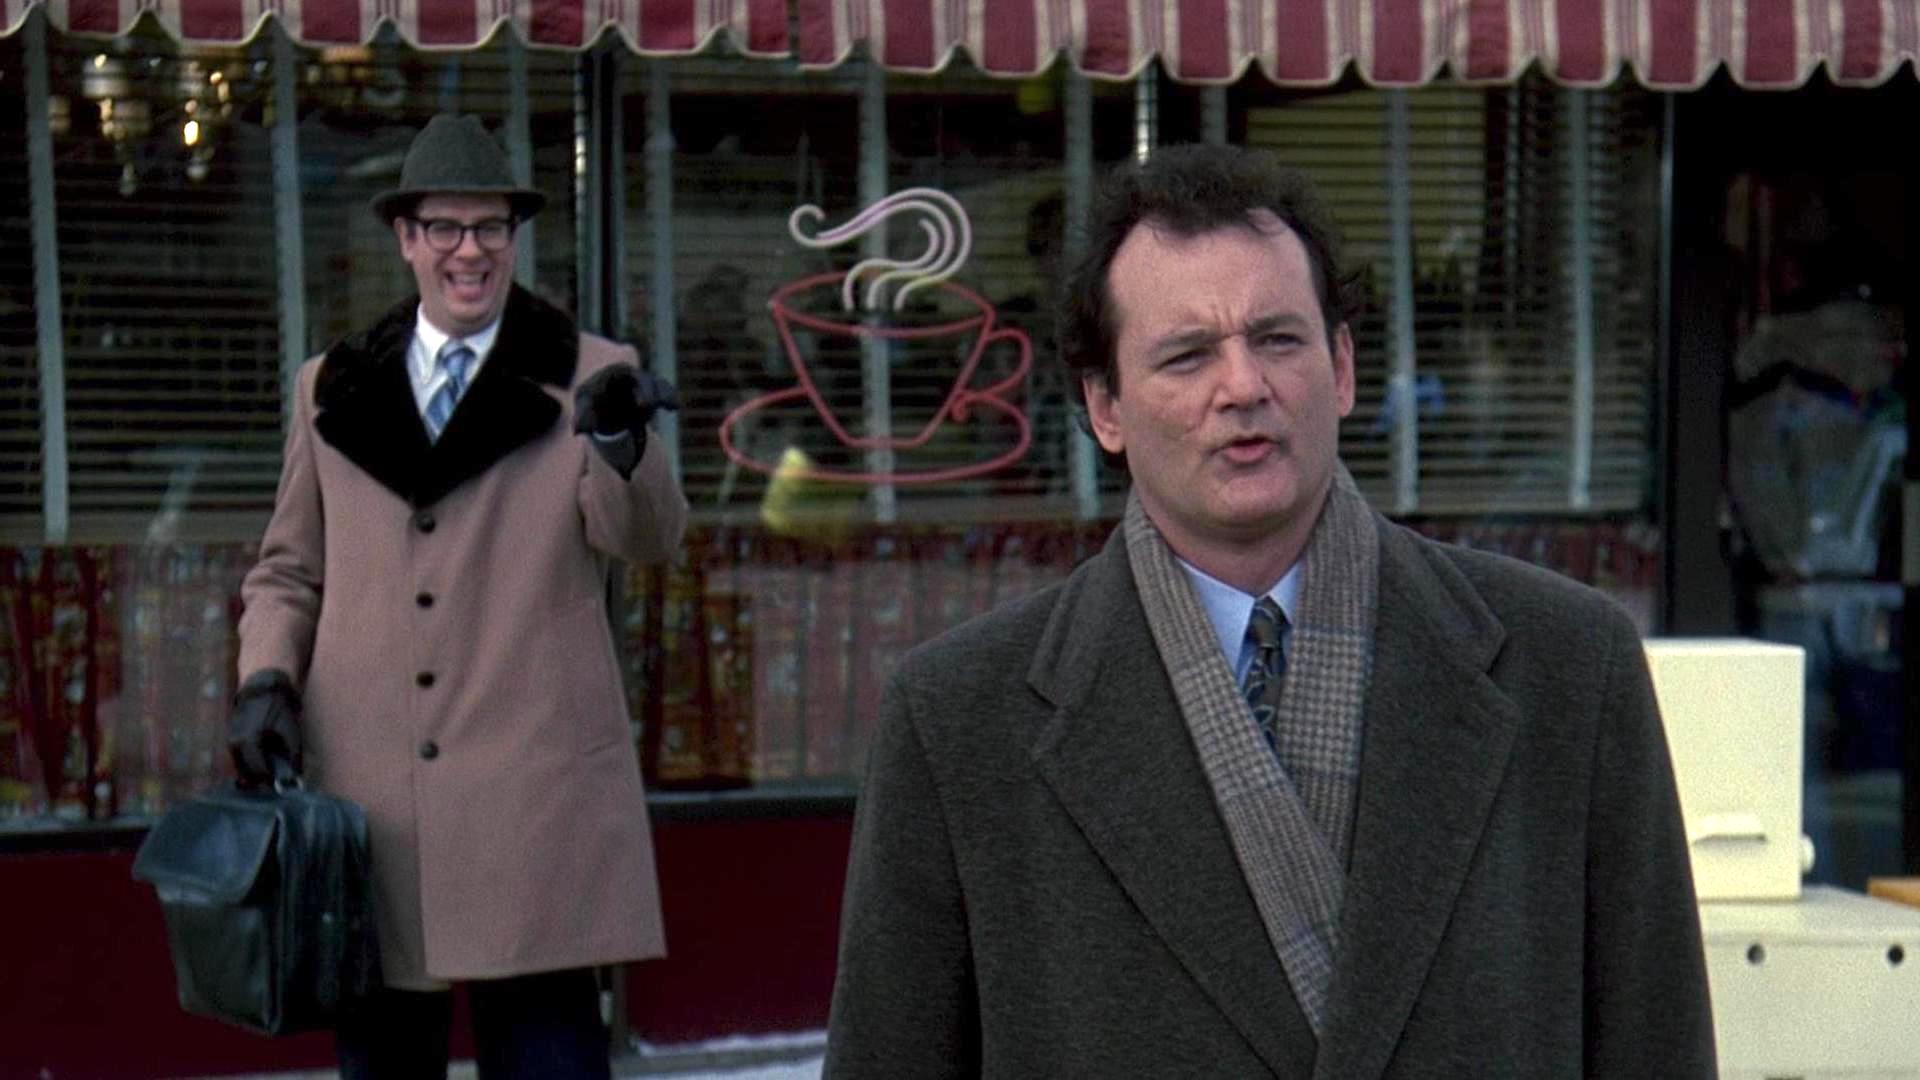 GROUNDHOG DAY on Groundhog Day!   7pm, Saturday 2nd February 2019  Insole Court Mansion  Book your tickets  here .